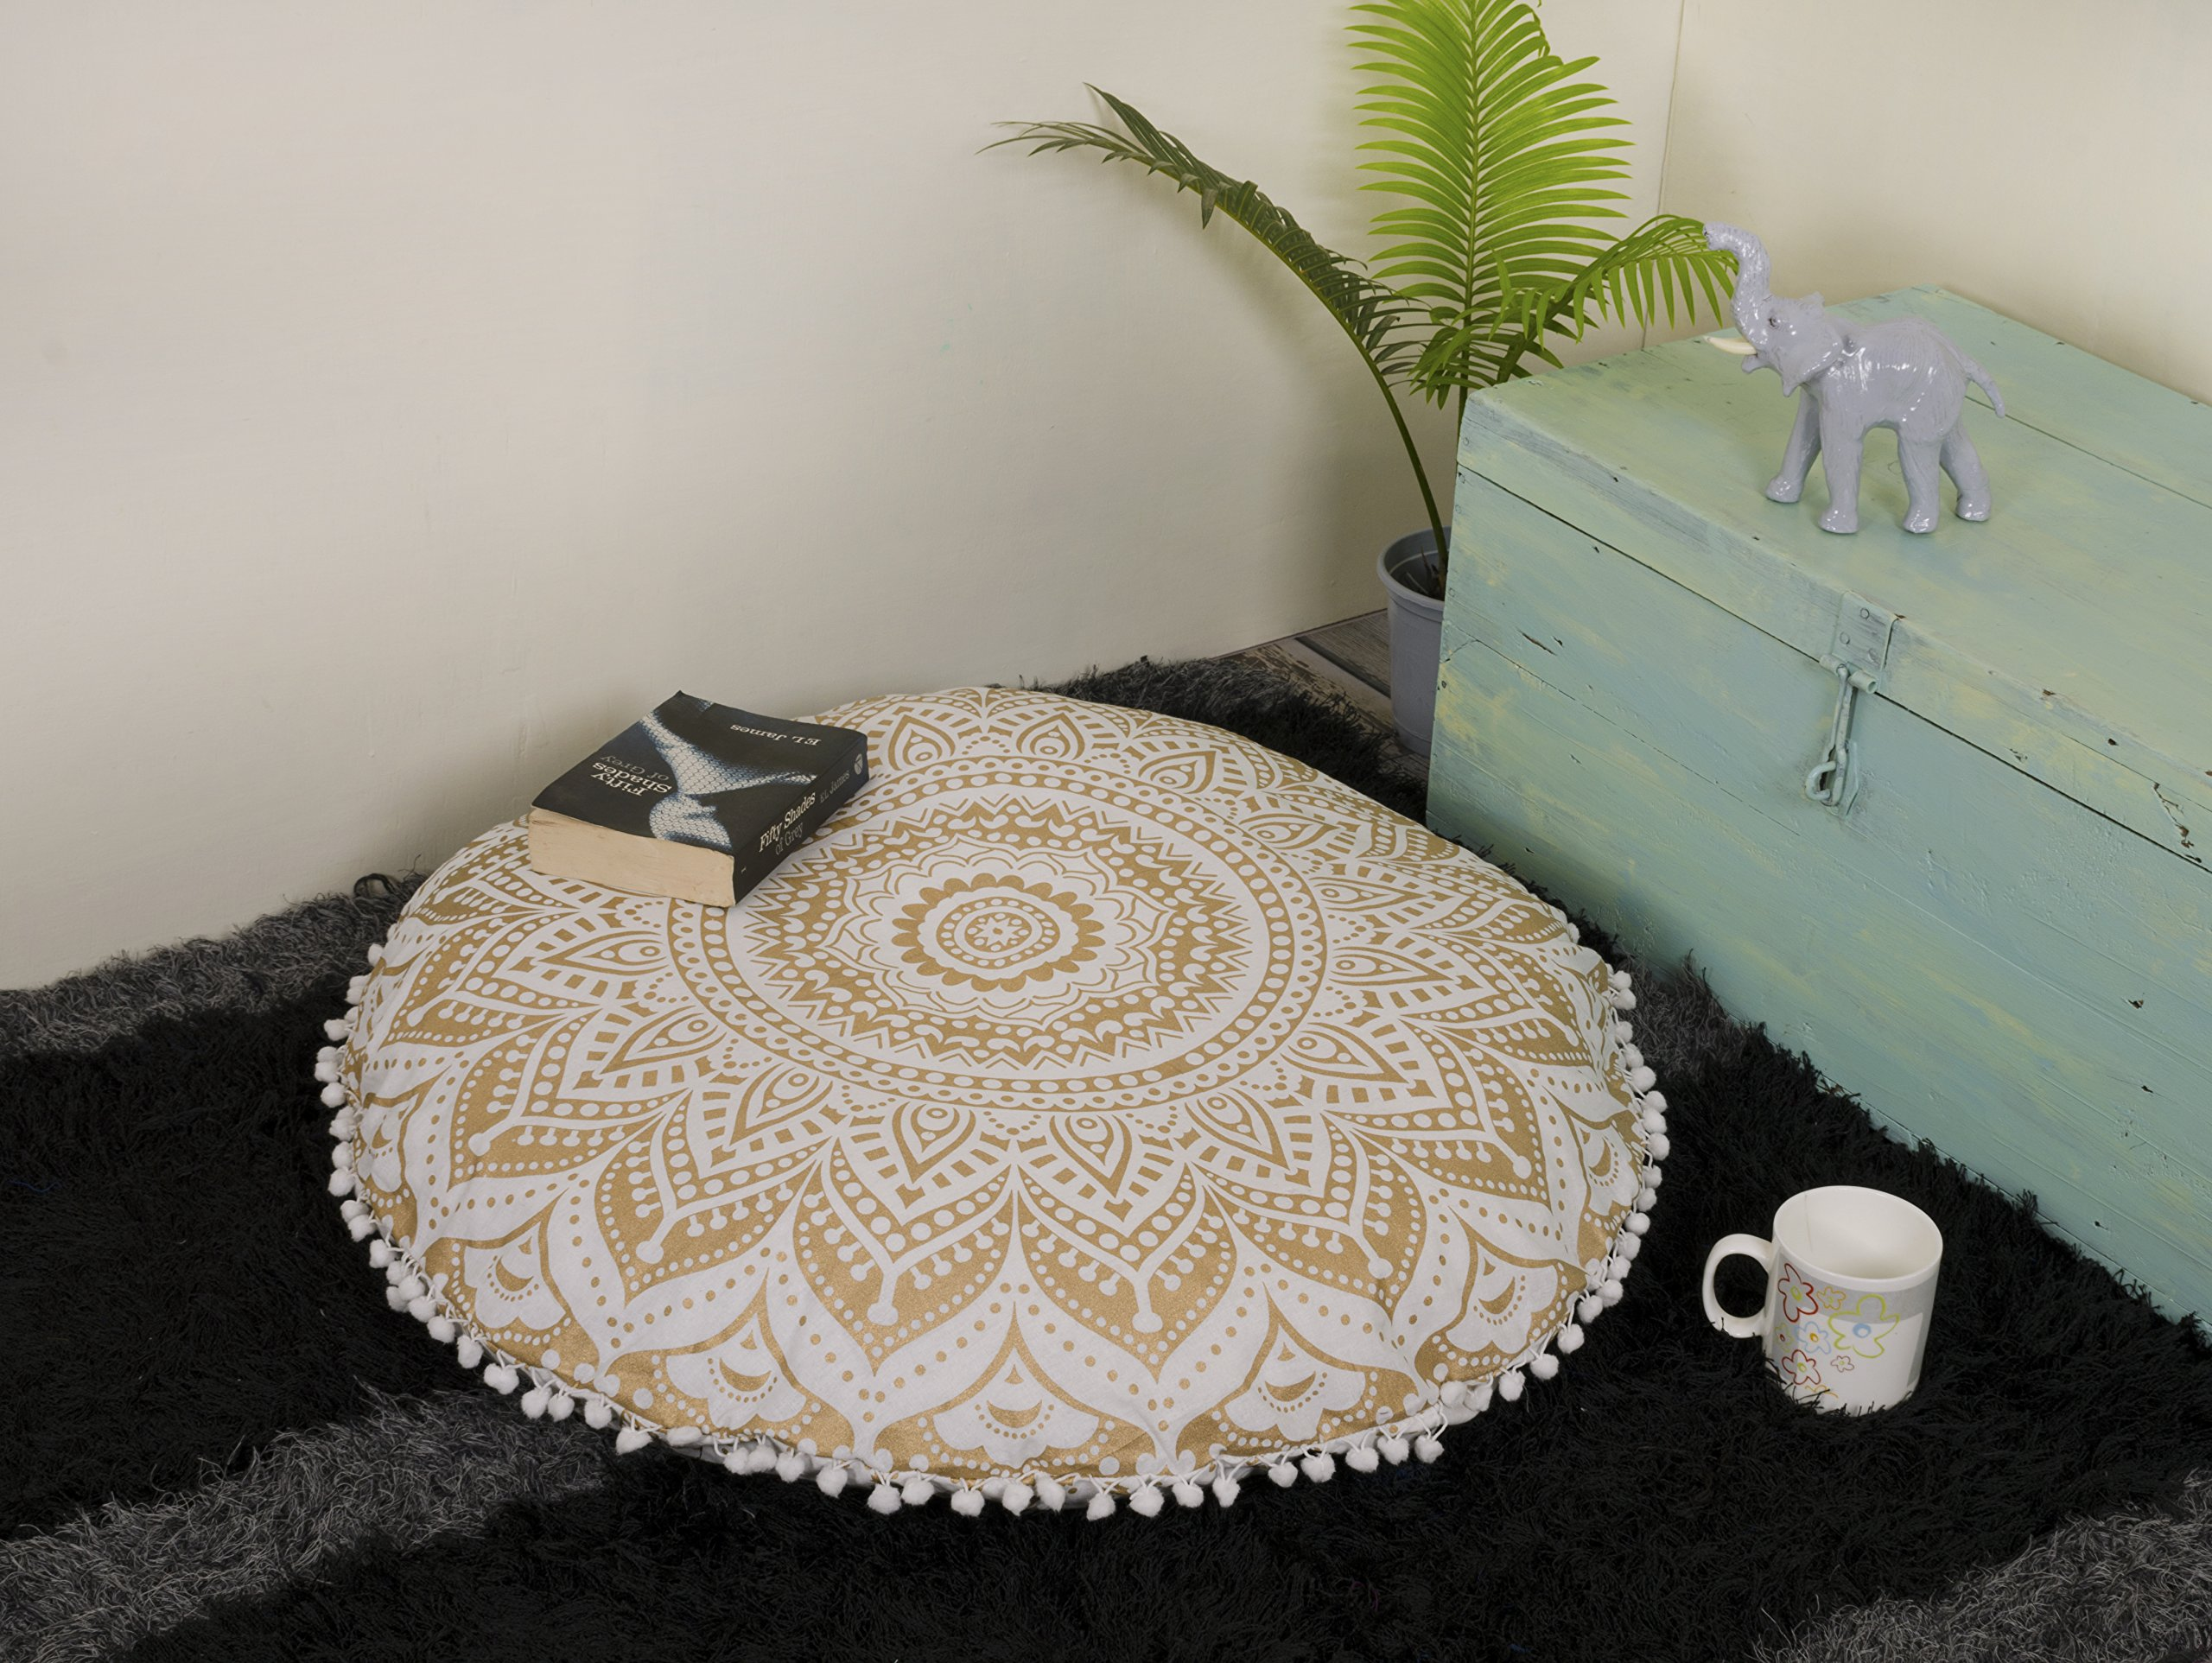 Popular Handicrafts Large Ombre Mandala Round Hippie Floor Pillow - Cushion - Pouf Cover Bohemian Yoga Decor Floor Cushion Case - 32'' Gold